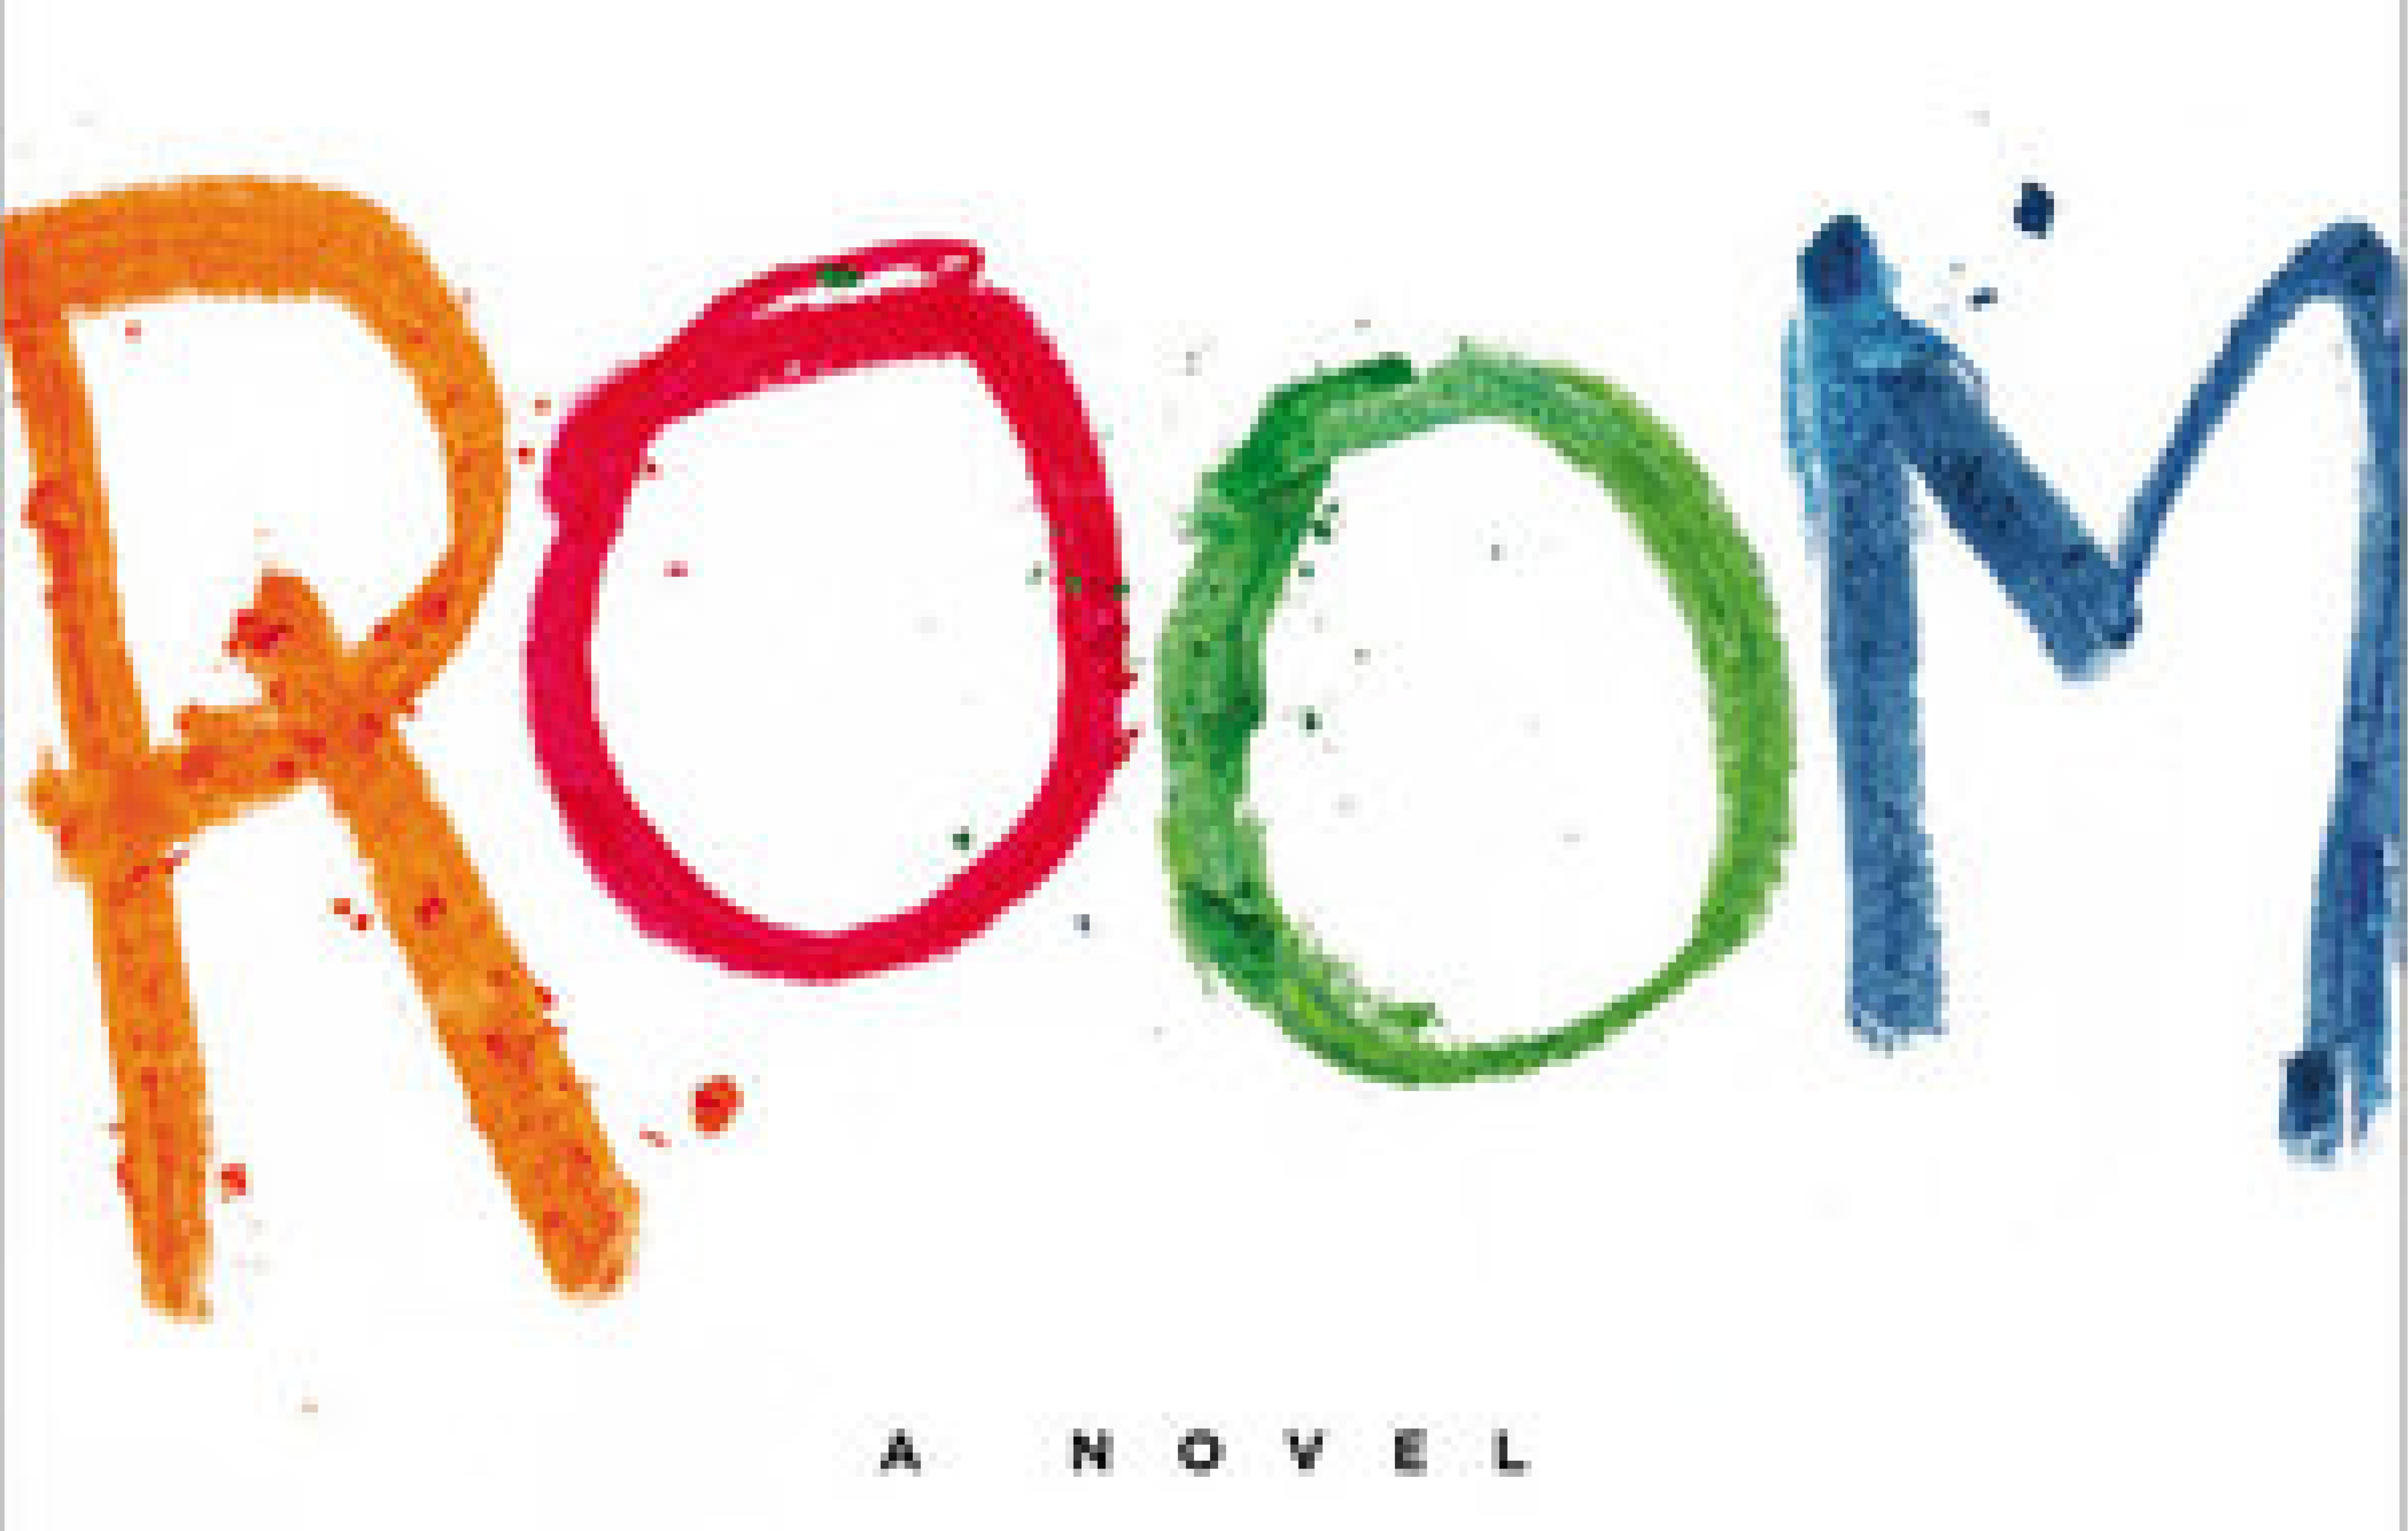 room by emma donpghue review